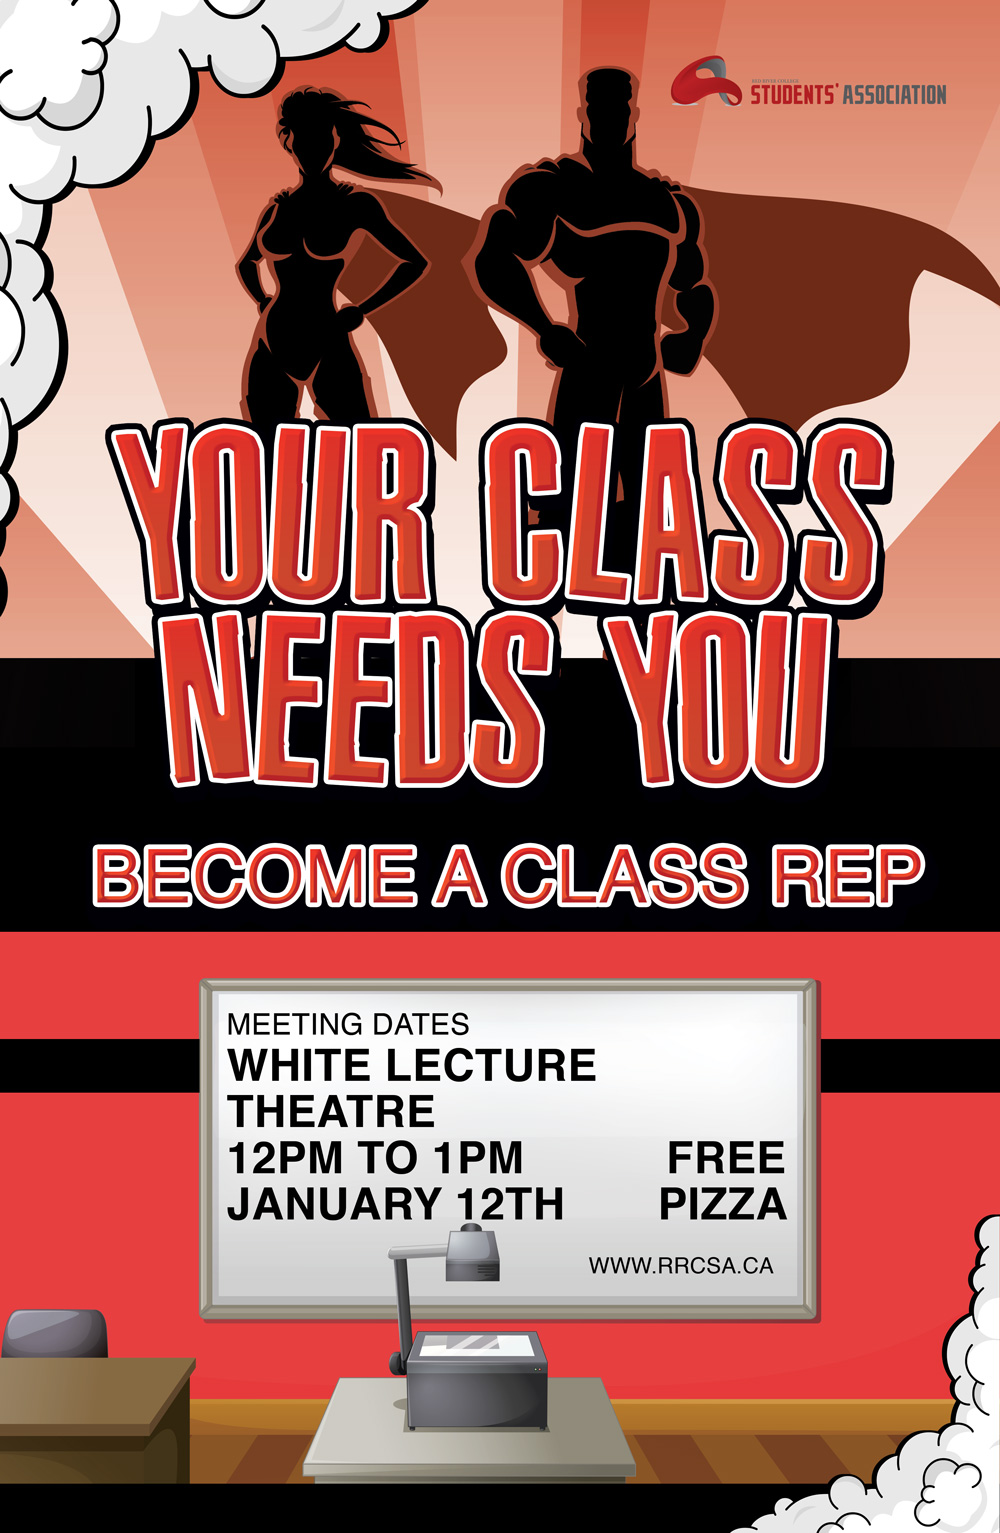 class_reps_needed